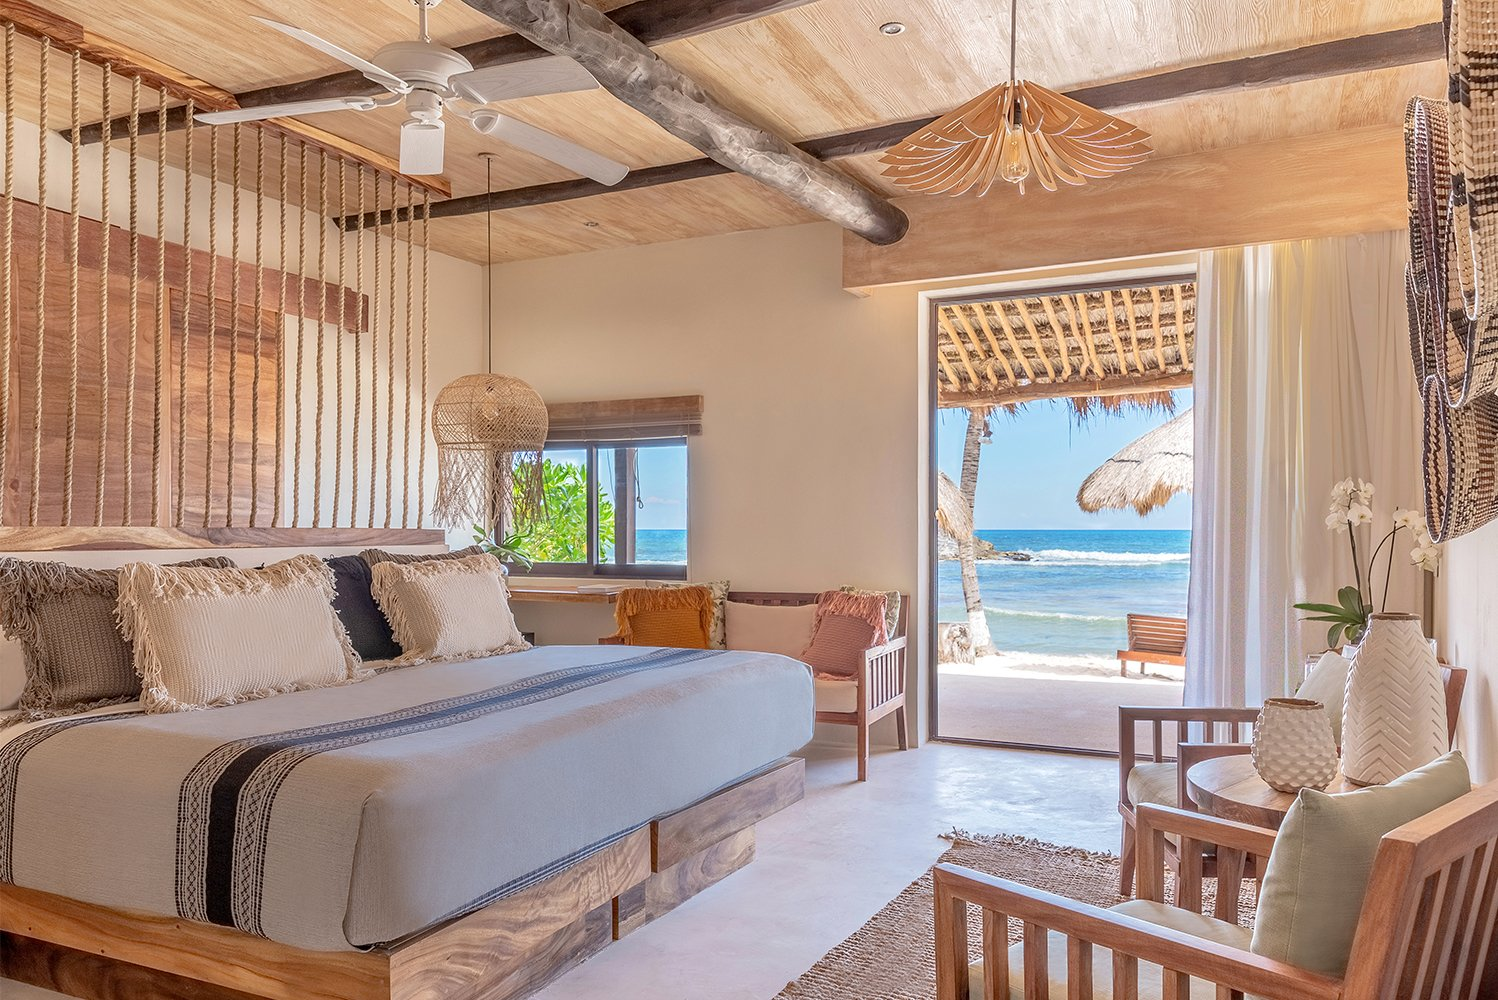 El Pez, a beachfront hotel in Tulum, Mexico, opened two on-the-beach rooms with plunge pools that may be heated.